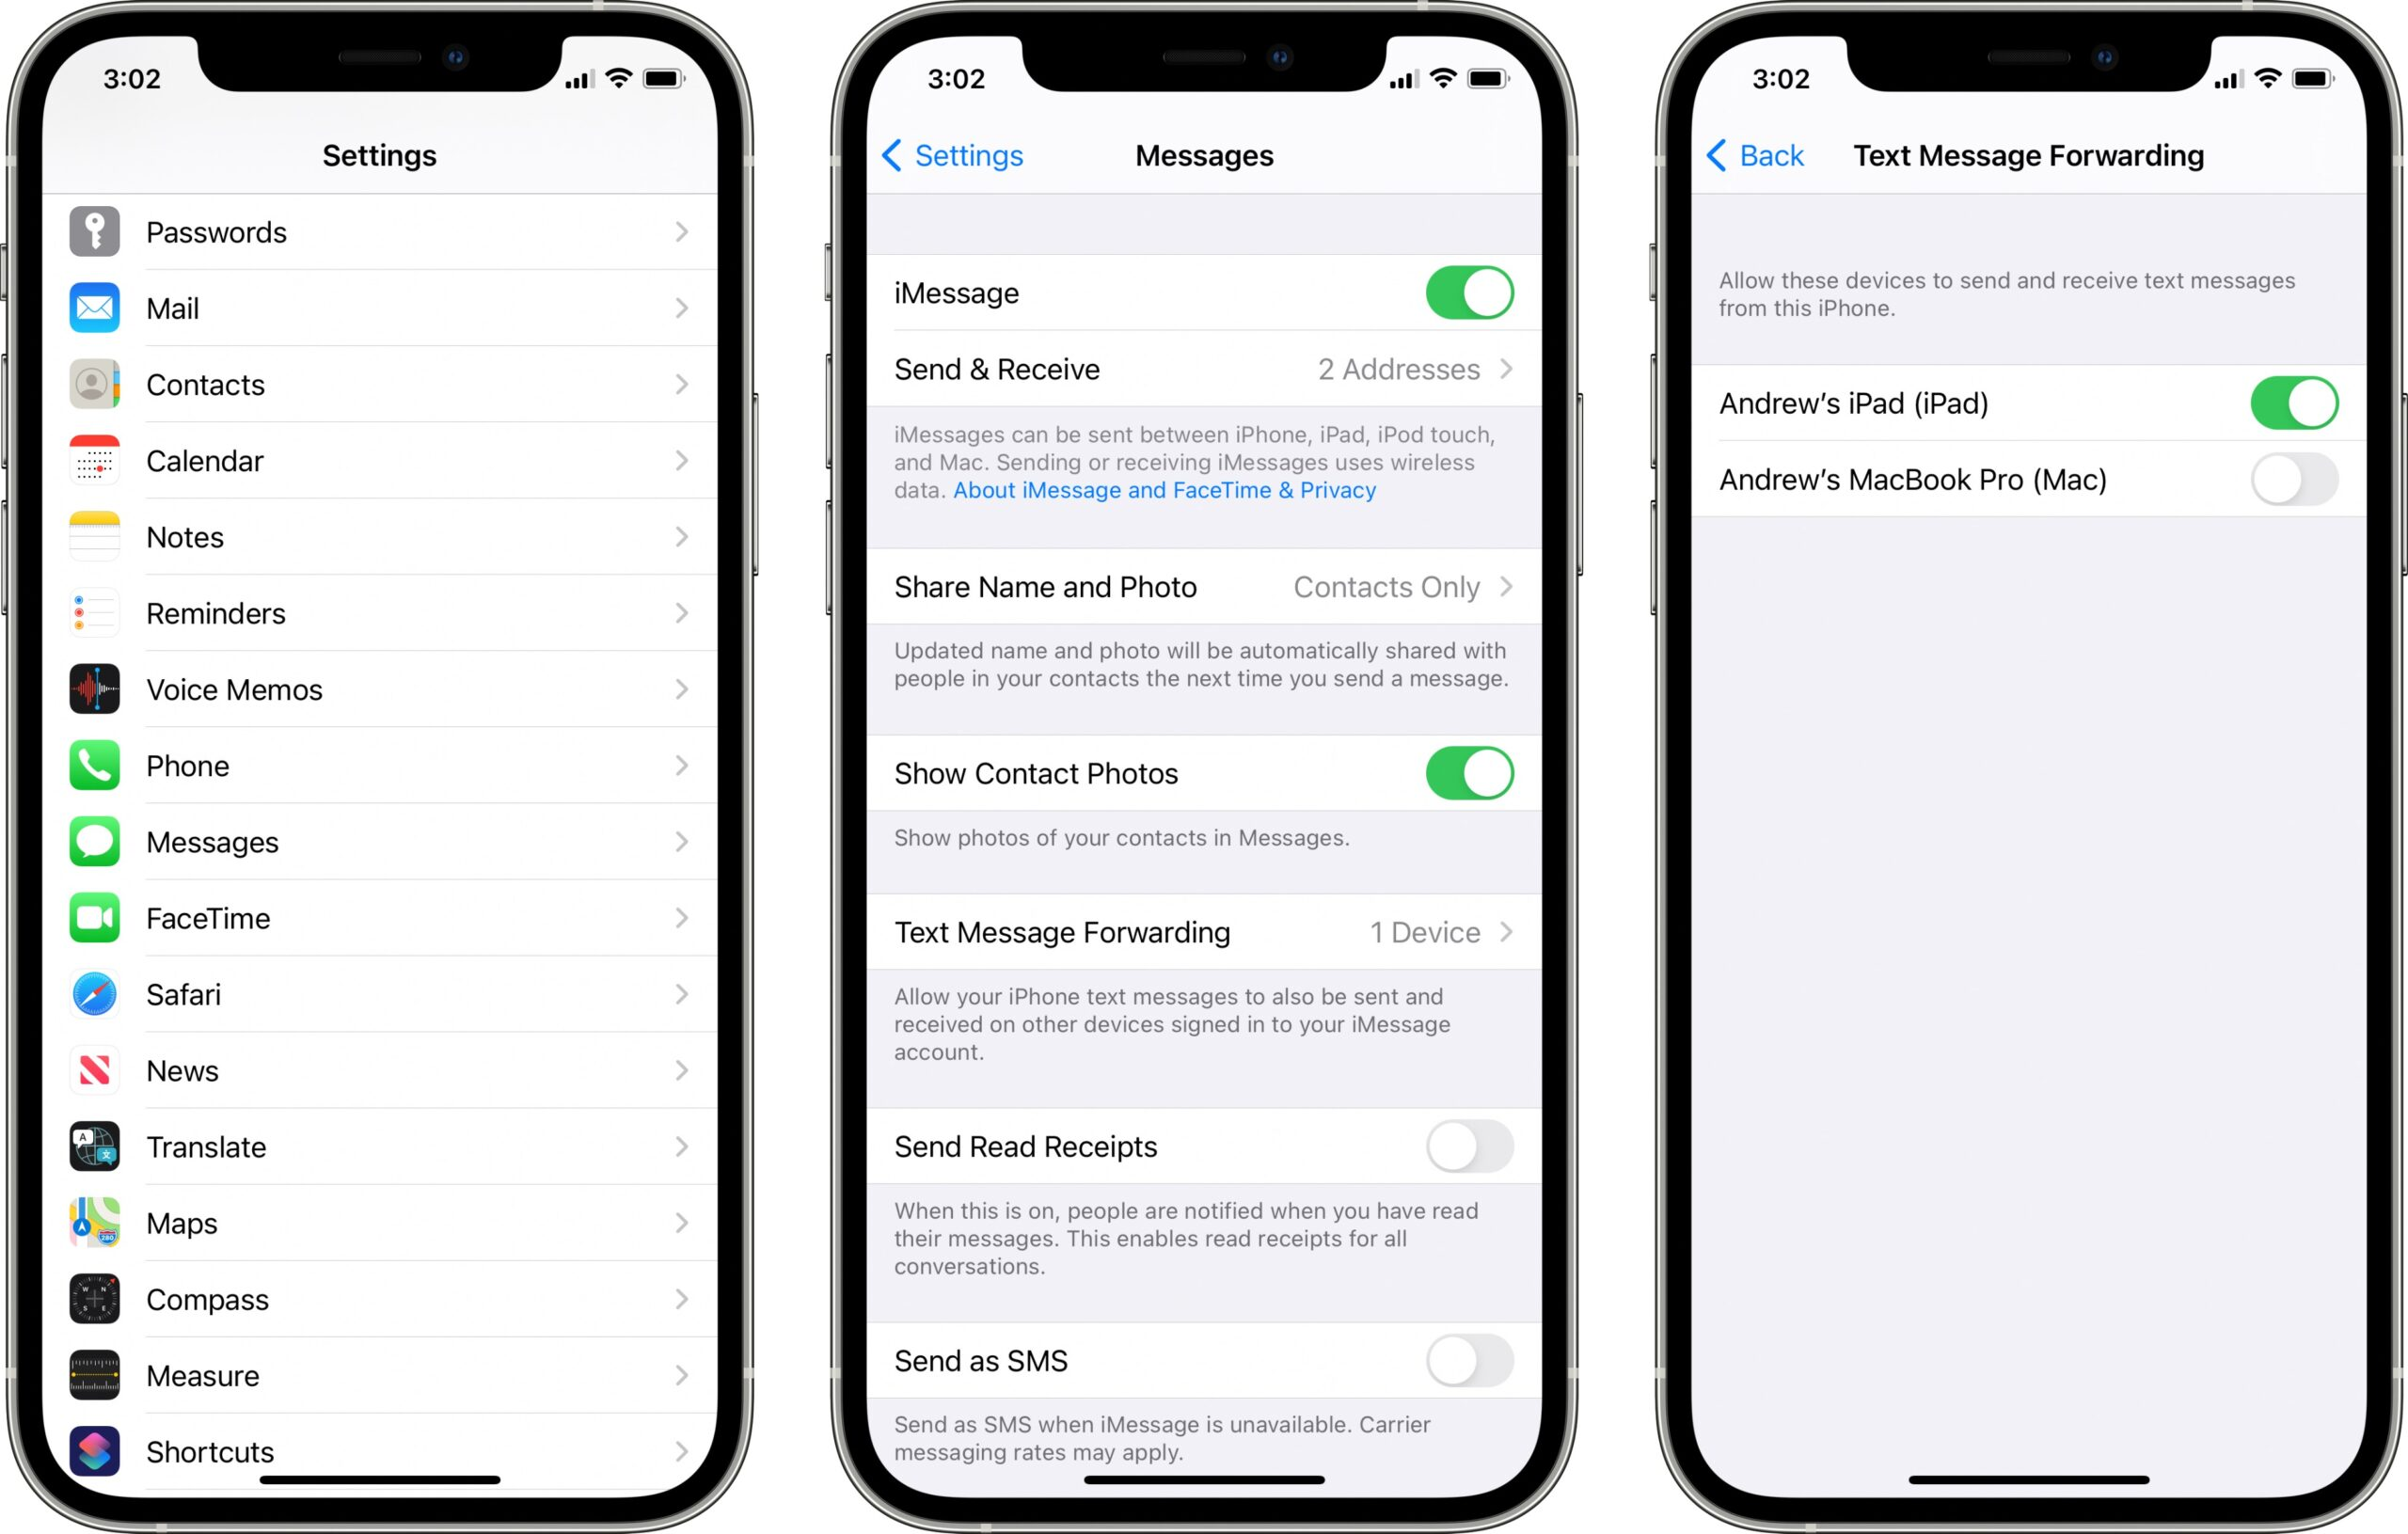 iPhone text message forwarding